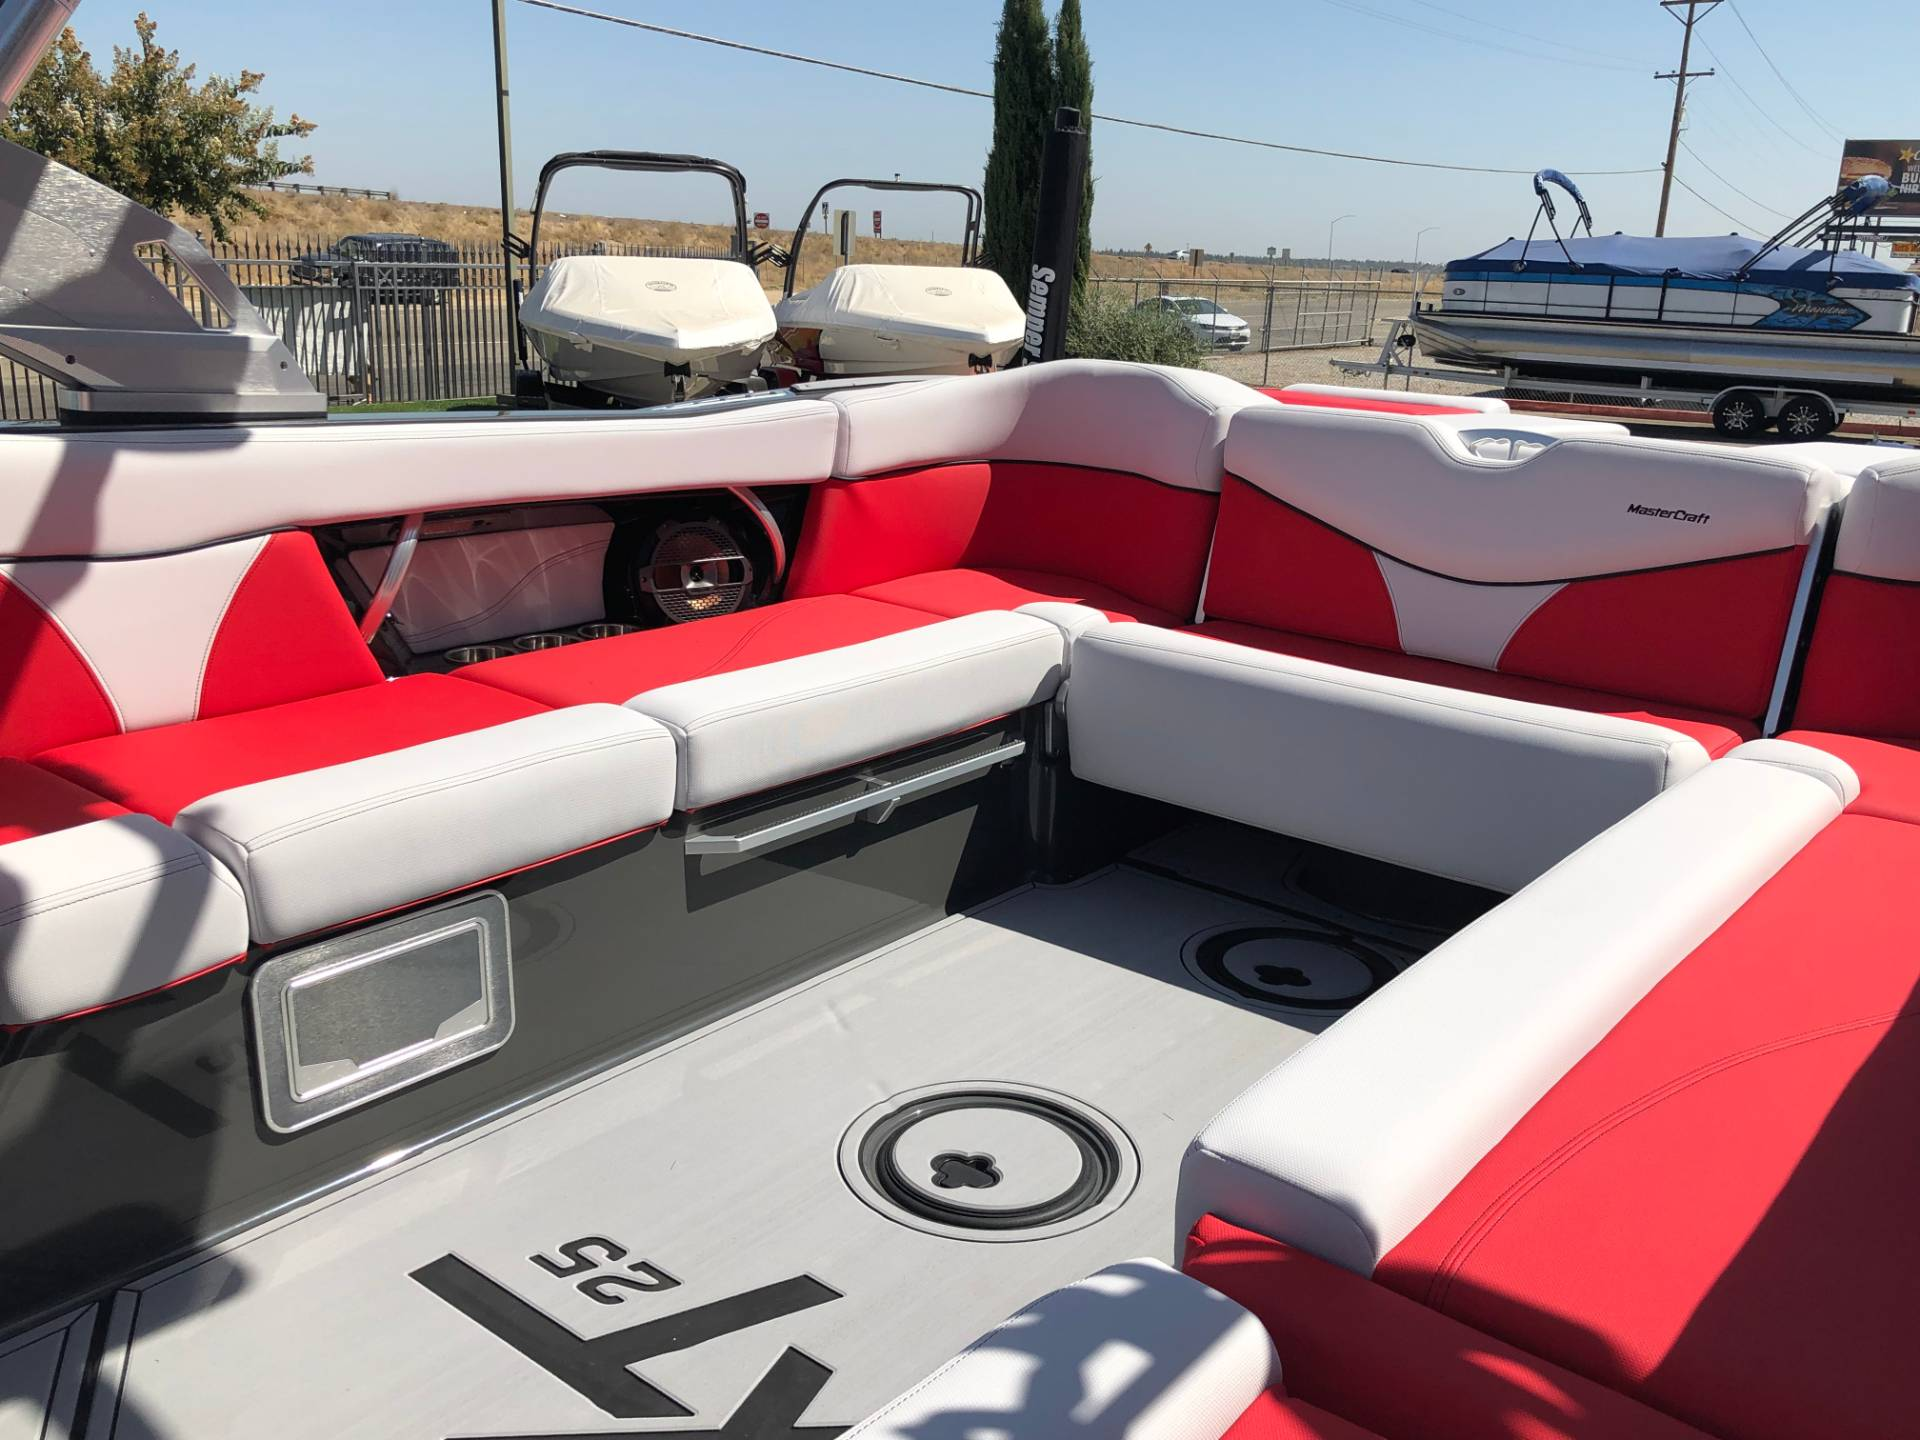 2020 Mastercraft XT25 in Madera, California - Photo 7